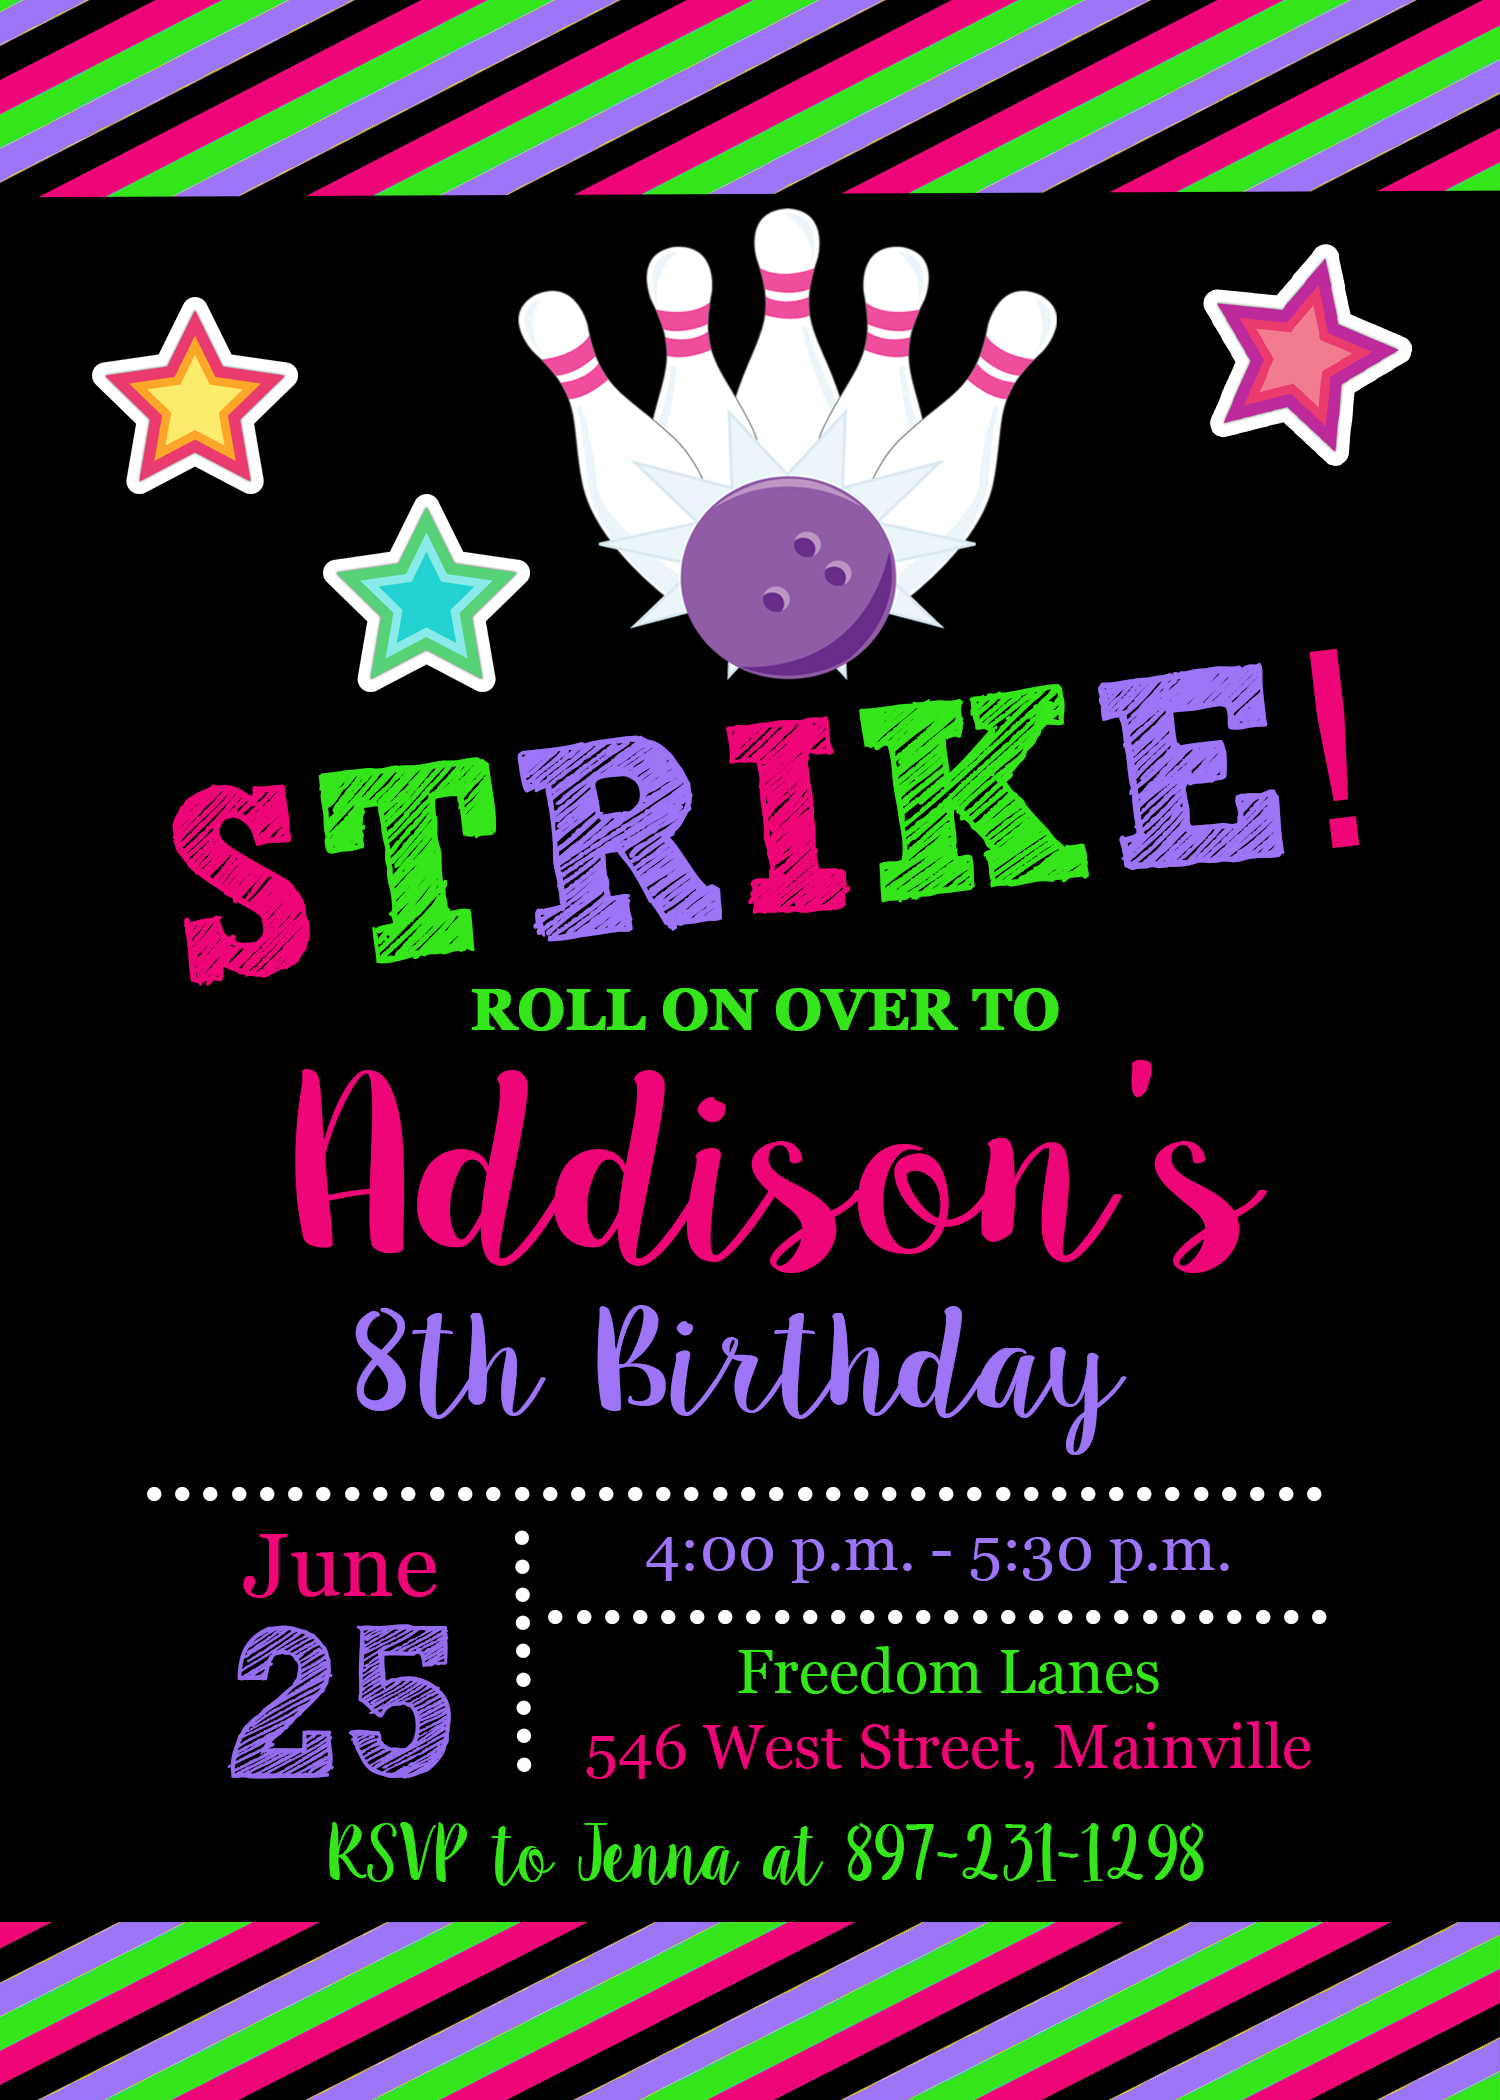 Bowling birthday party invitation bowling girl invitation bowling birthday party invitation bowling girl invitation digital or printed thumbnail filmwisefo